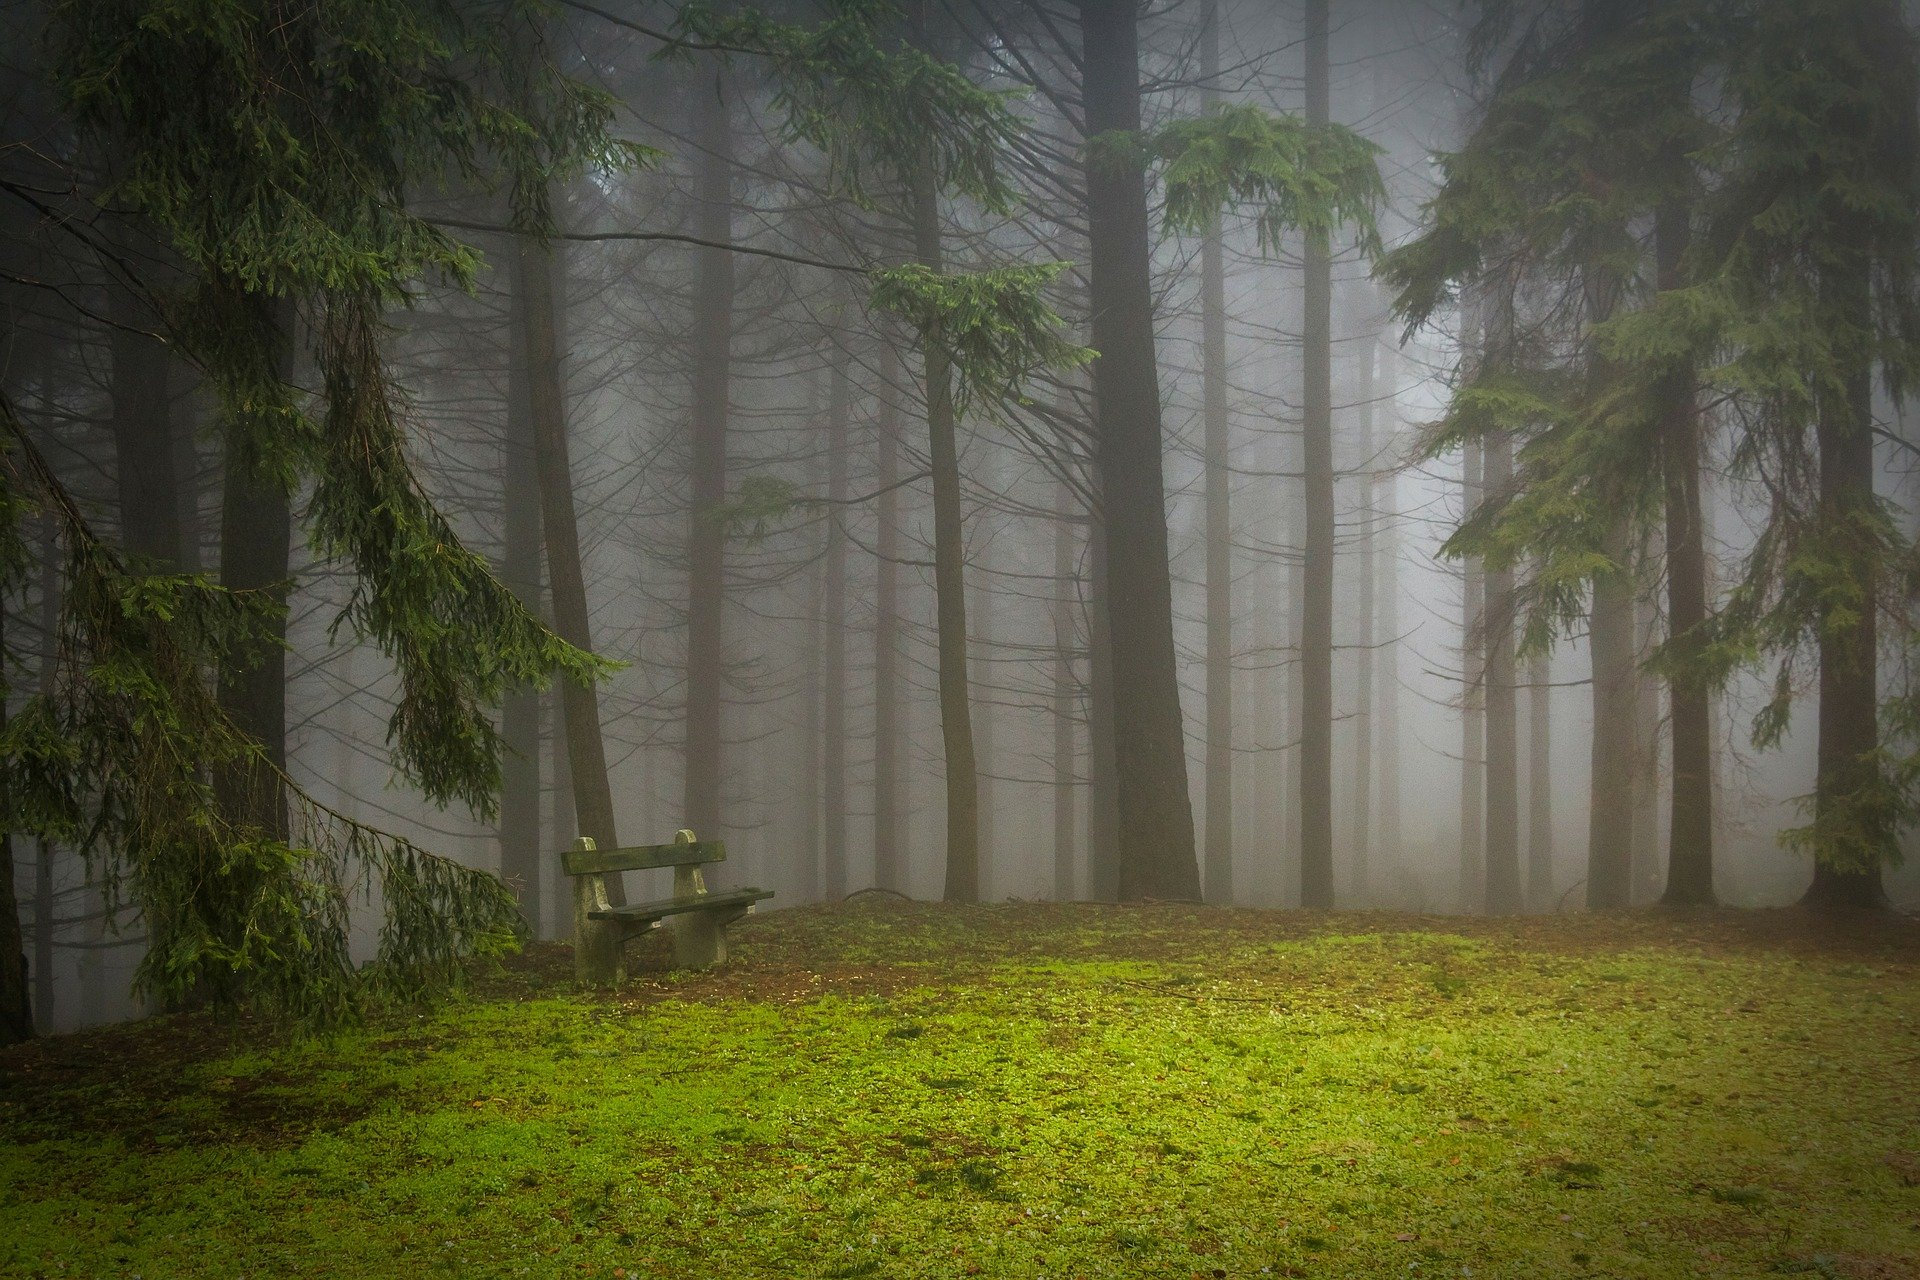 peaceful forrest hd wallpaper background image 1920x1280 id